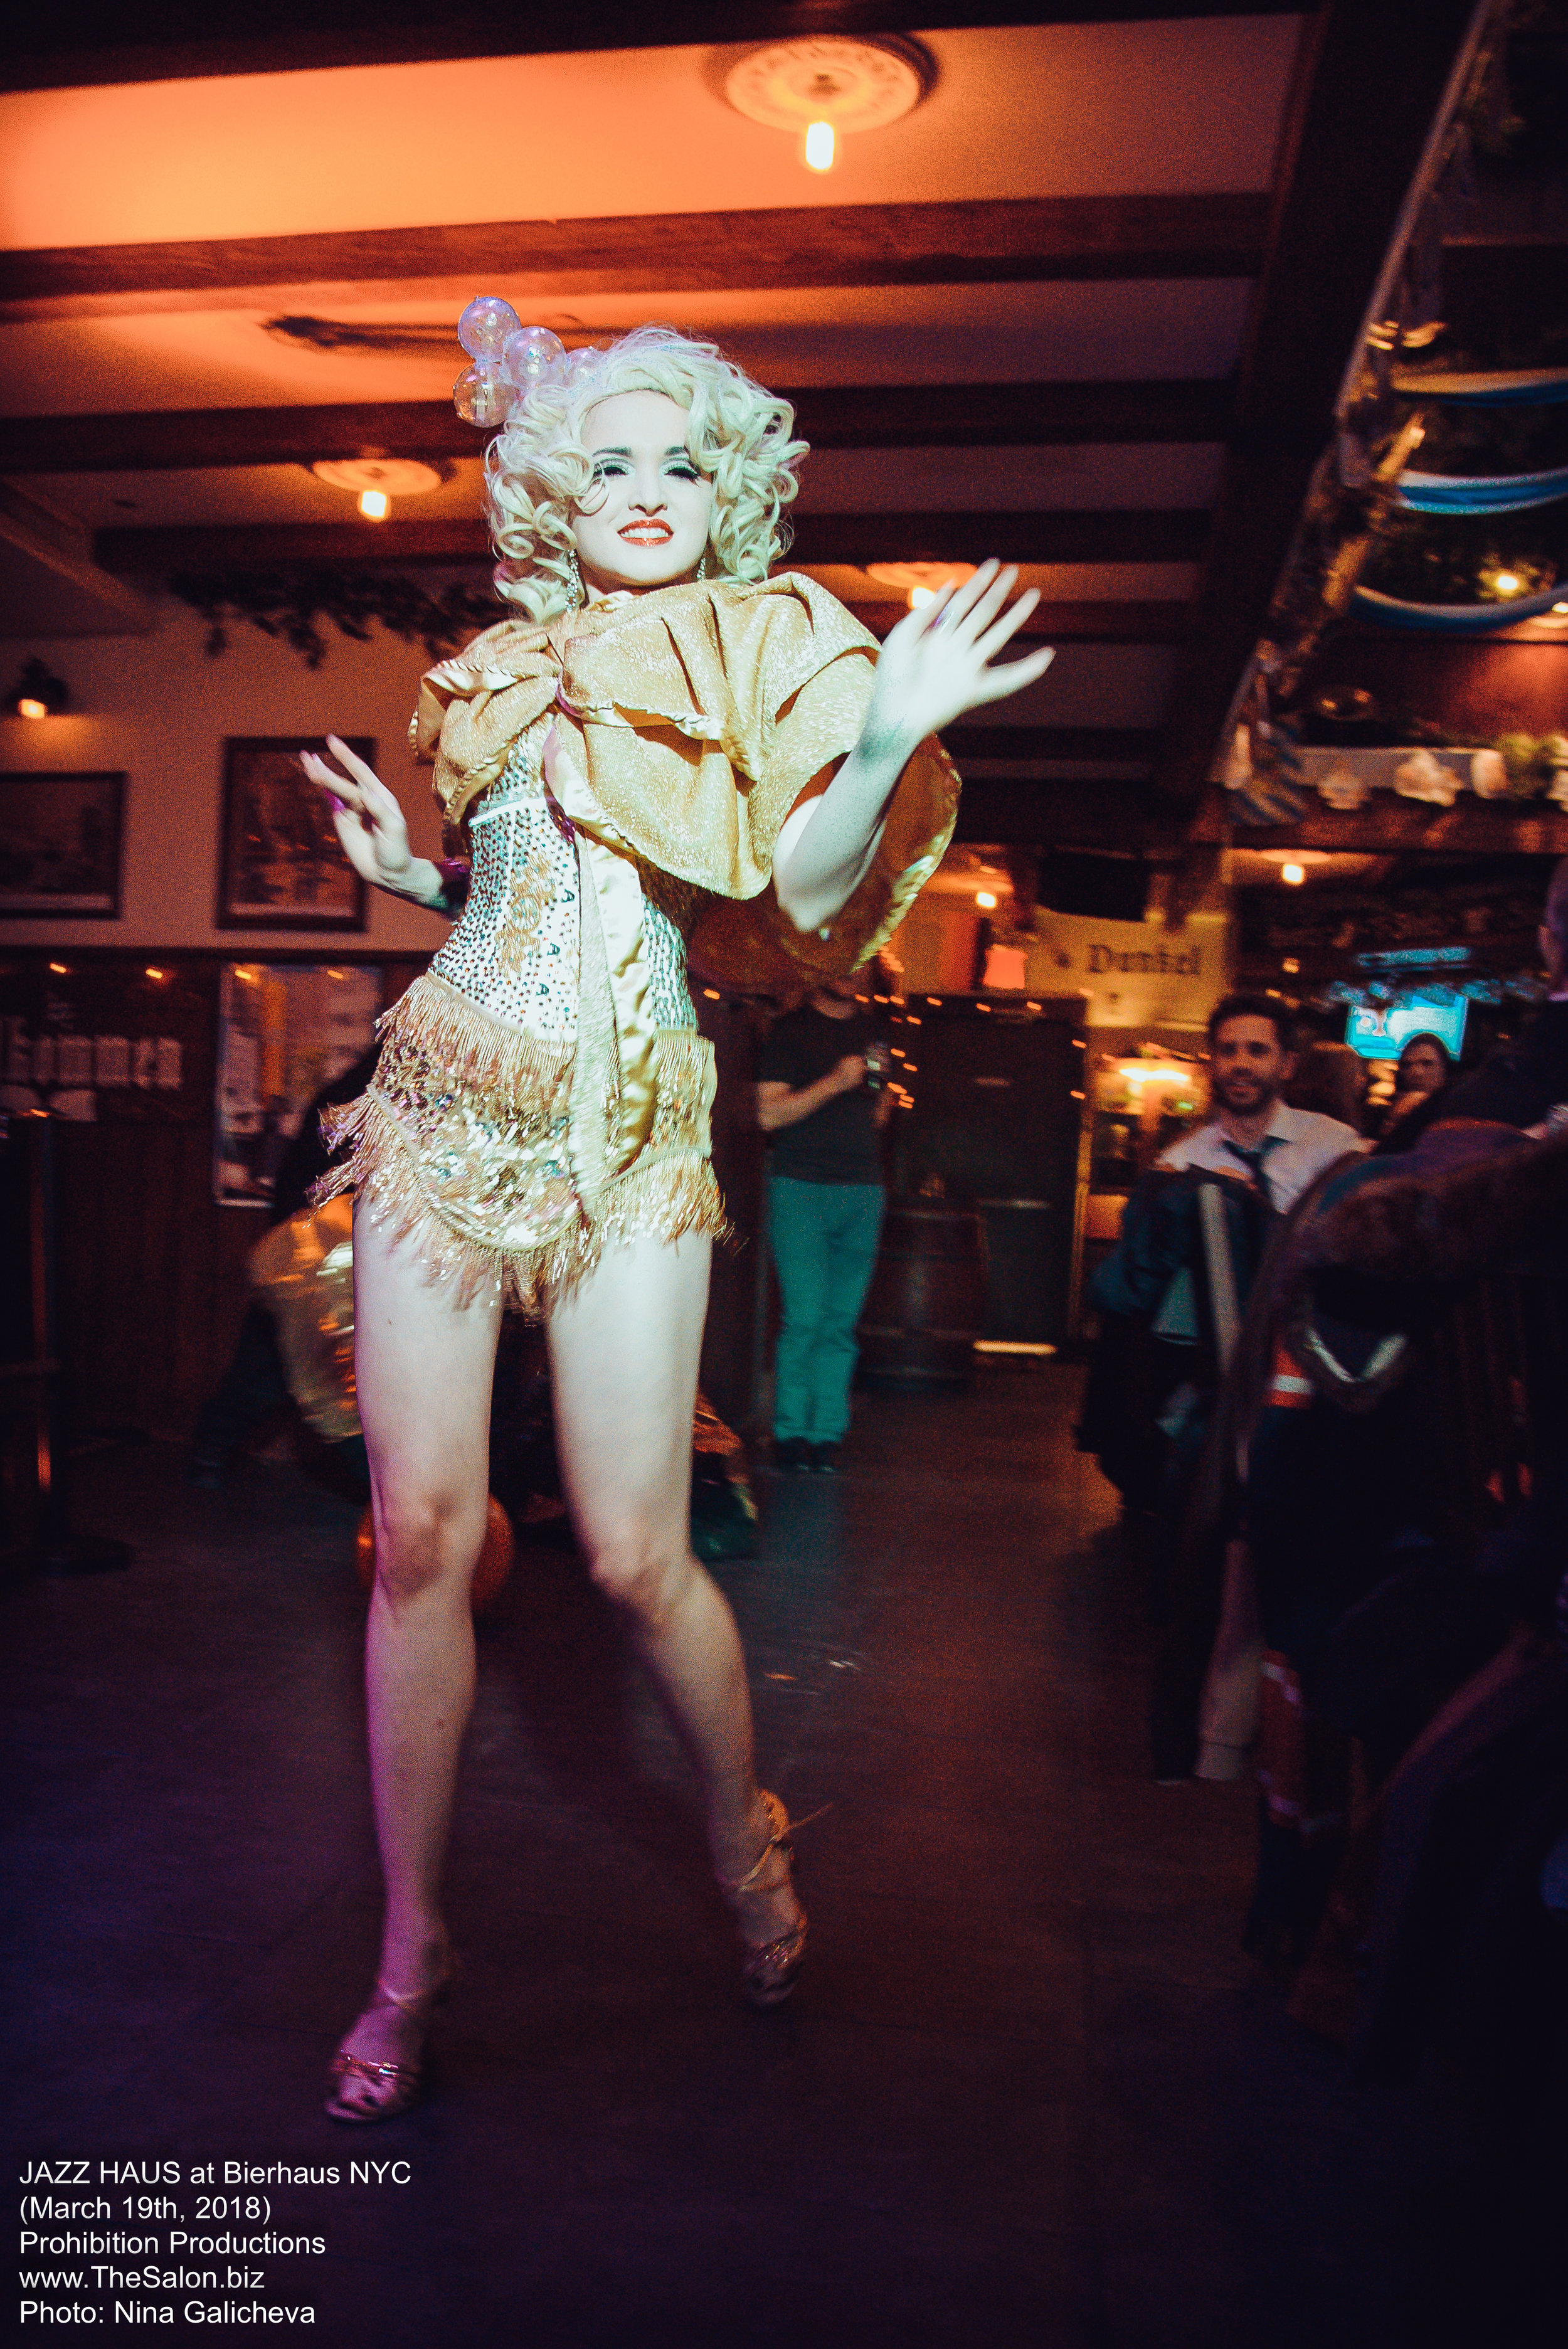 30_JAZZ-HAUS__burlesque__DSC_0468_NG_photocredit-Nina-Galicheva.jpg